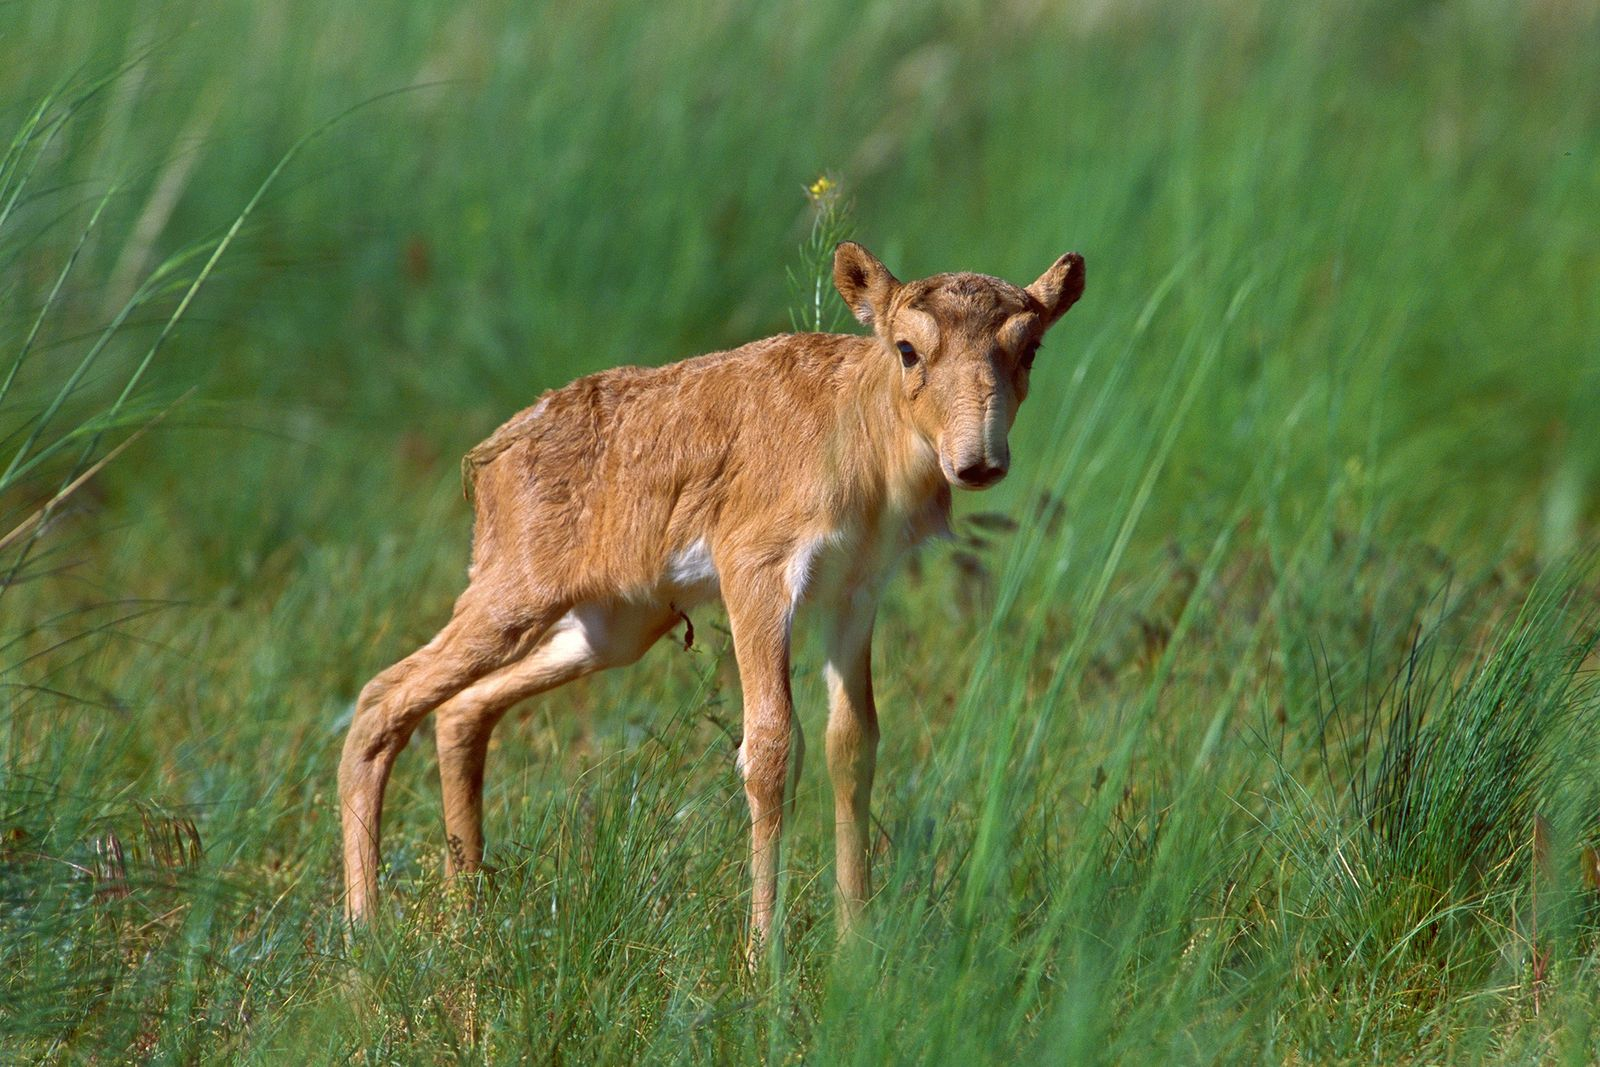 Floppy-nosed antelope has baby boom, raising hope for critically endangered species